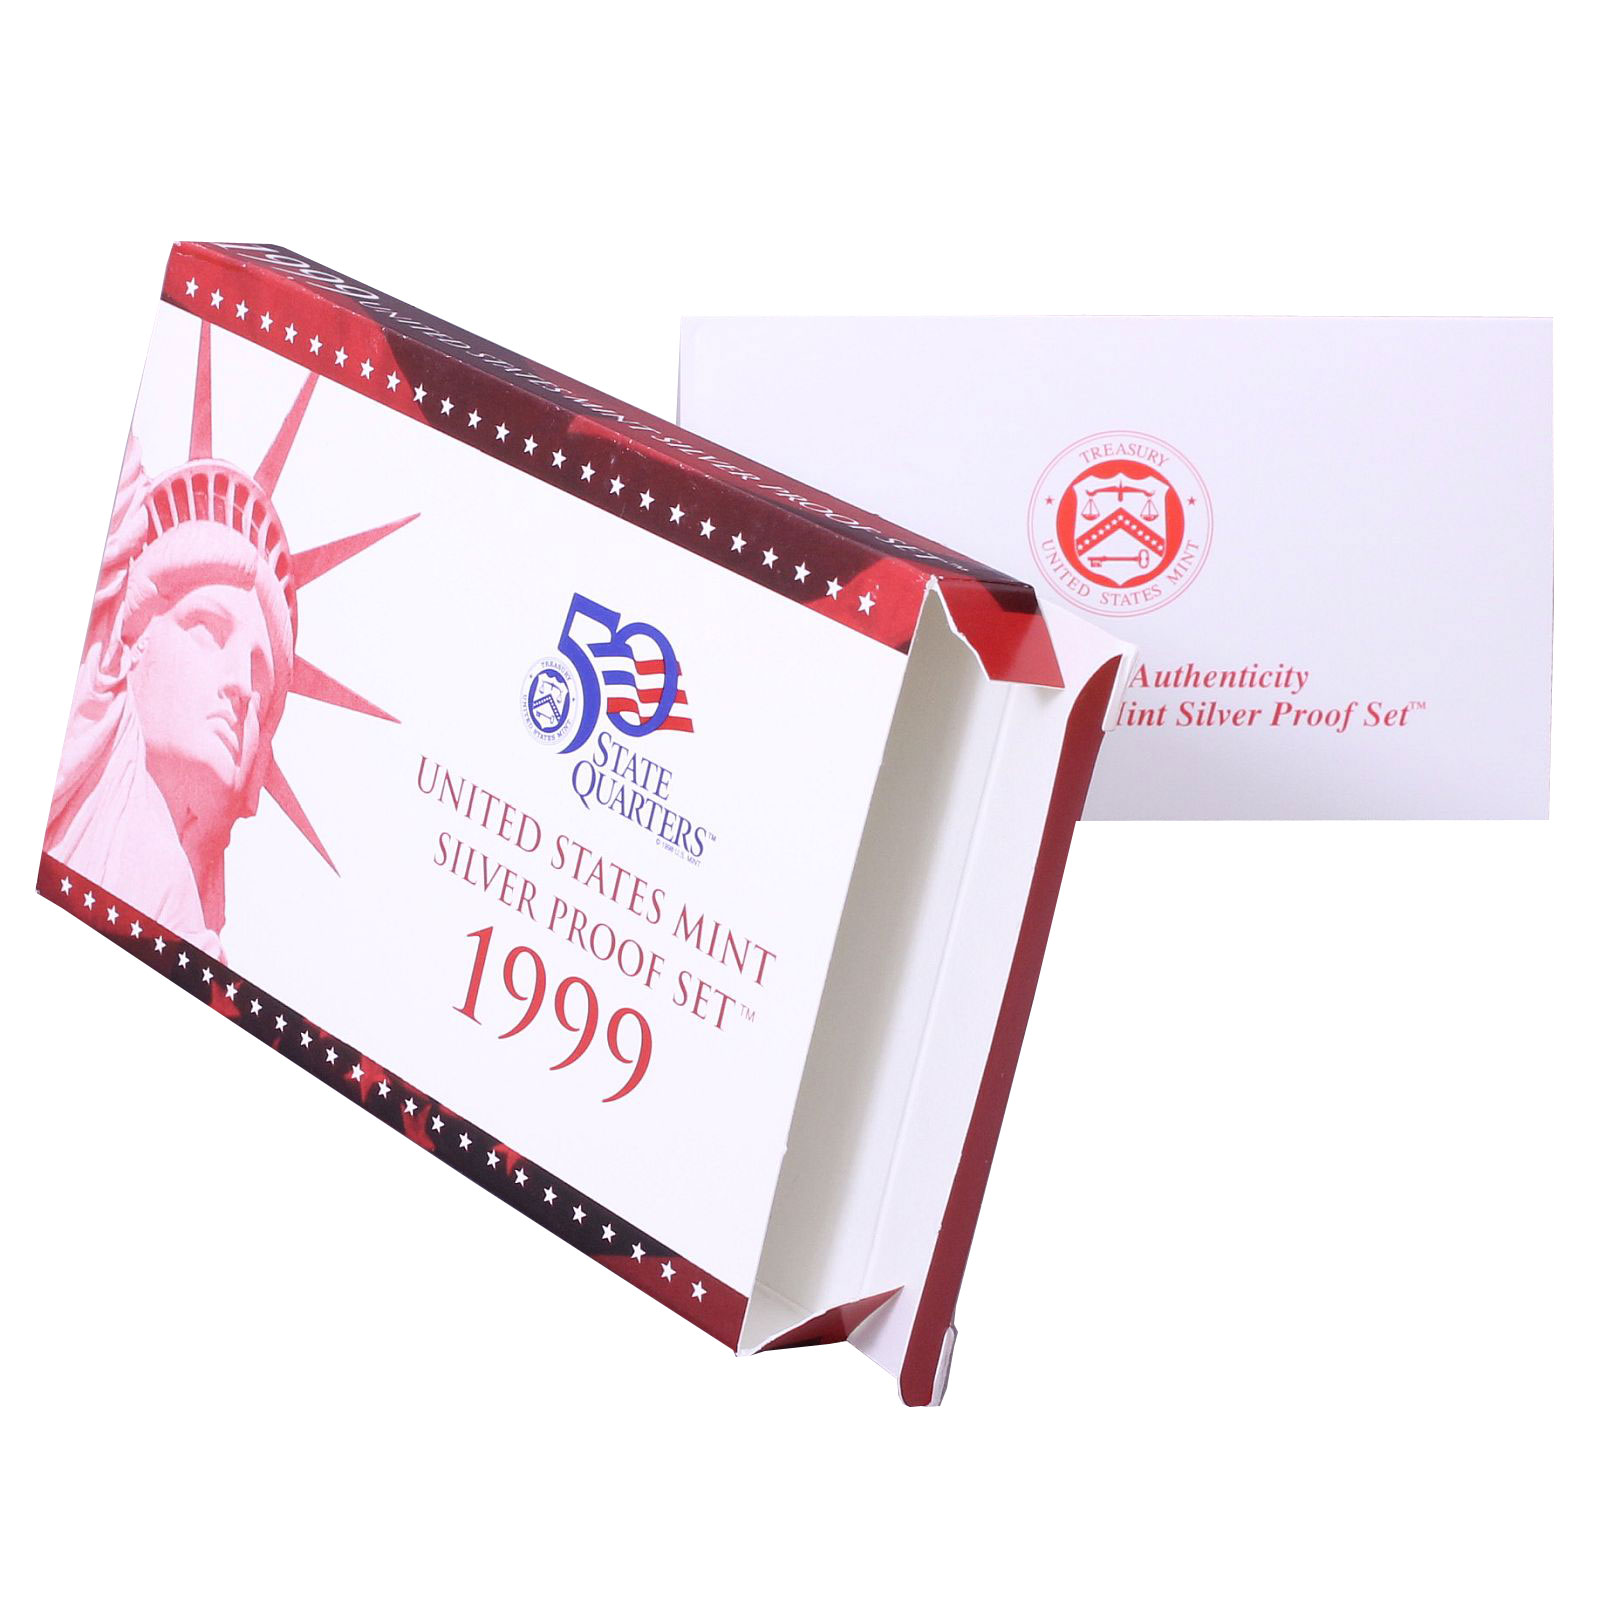 Empty-Packaging-Replacement-Silver-Proof-Set-Red-Box-amp-COA-No-Coins-1999